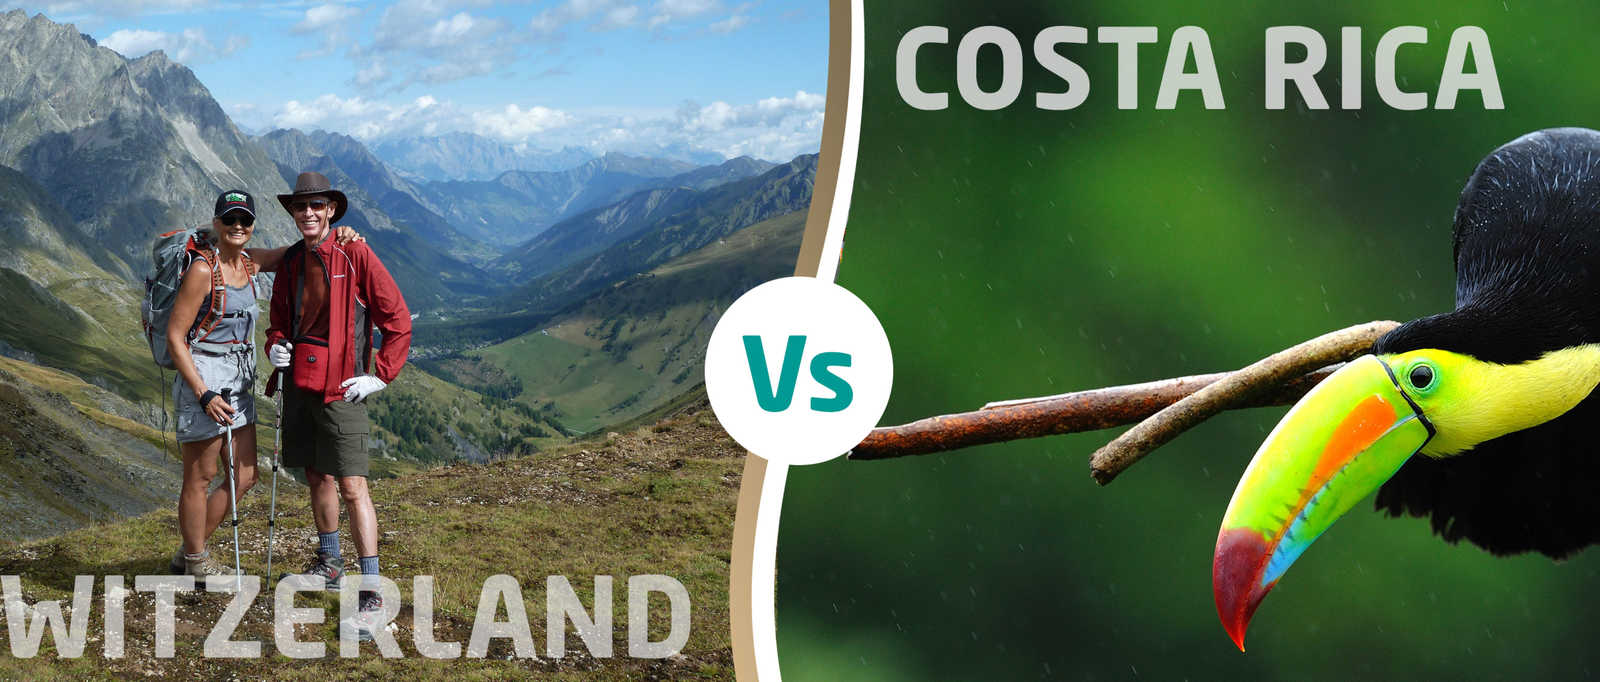 Switzerland versus Costa Rica